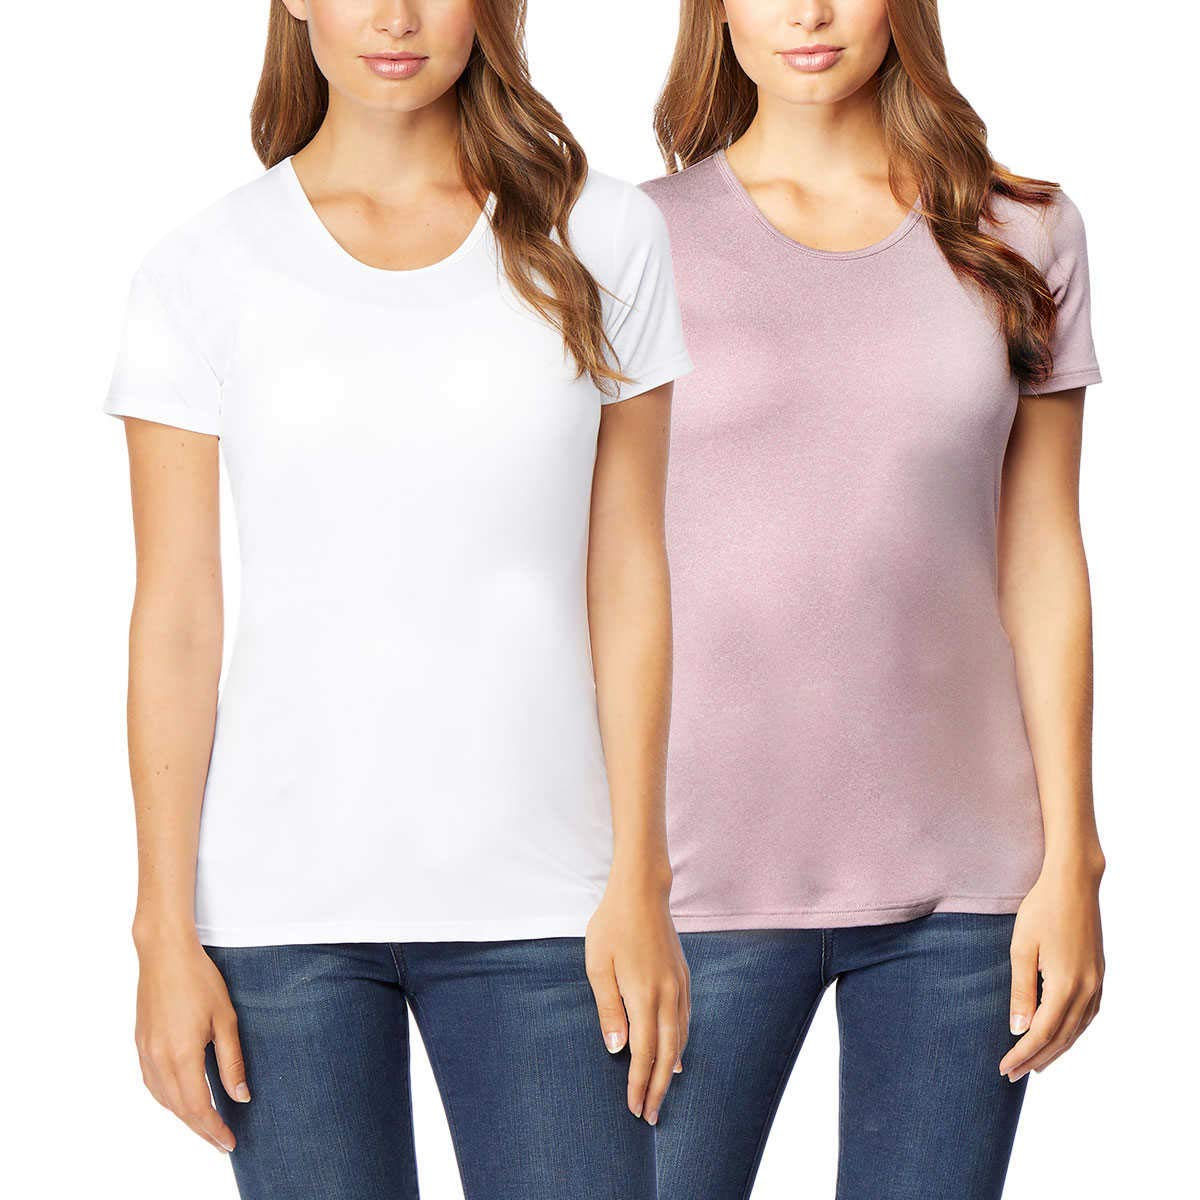 dab110d4ac7f 32 DEGREES Women 2 Pack Cool Scoop Neck Wicking Tee Shirt at Amazon Women's  Clothing store: